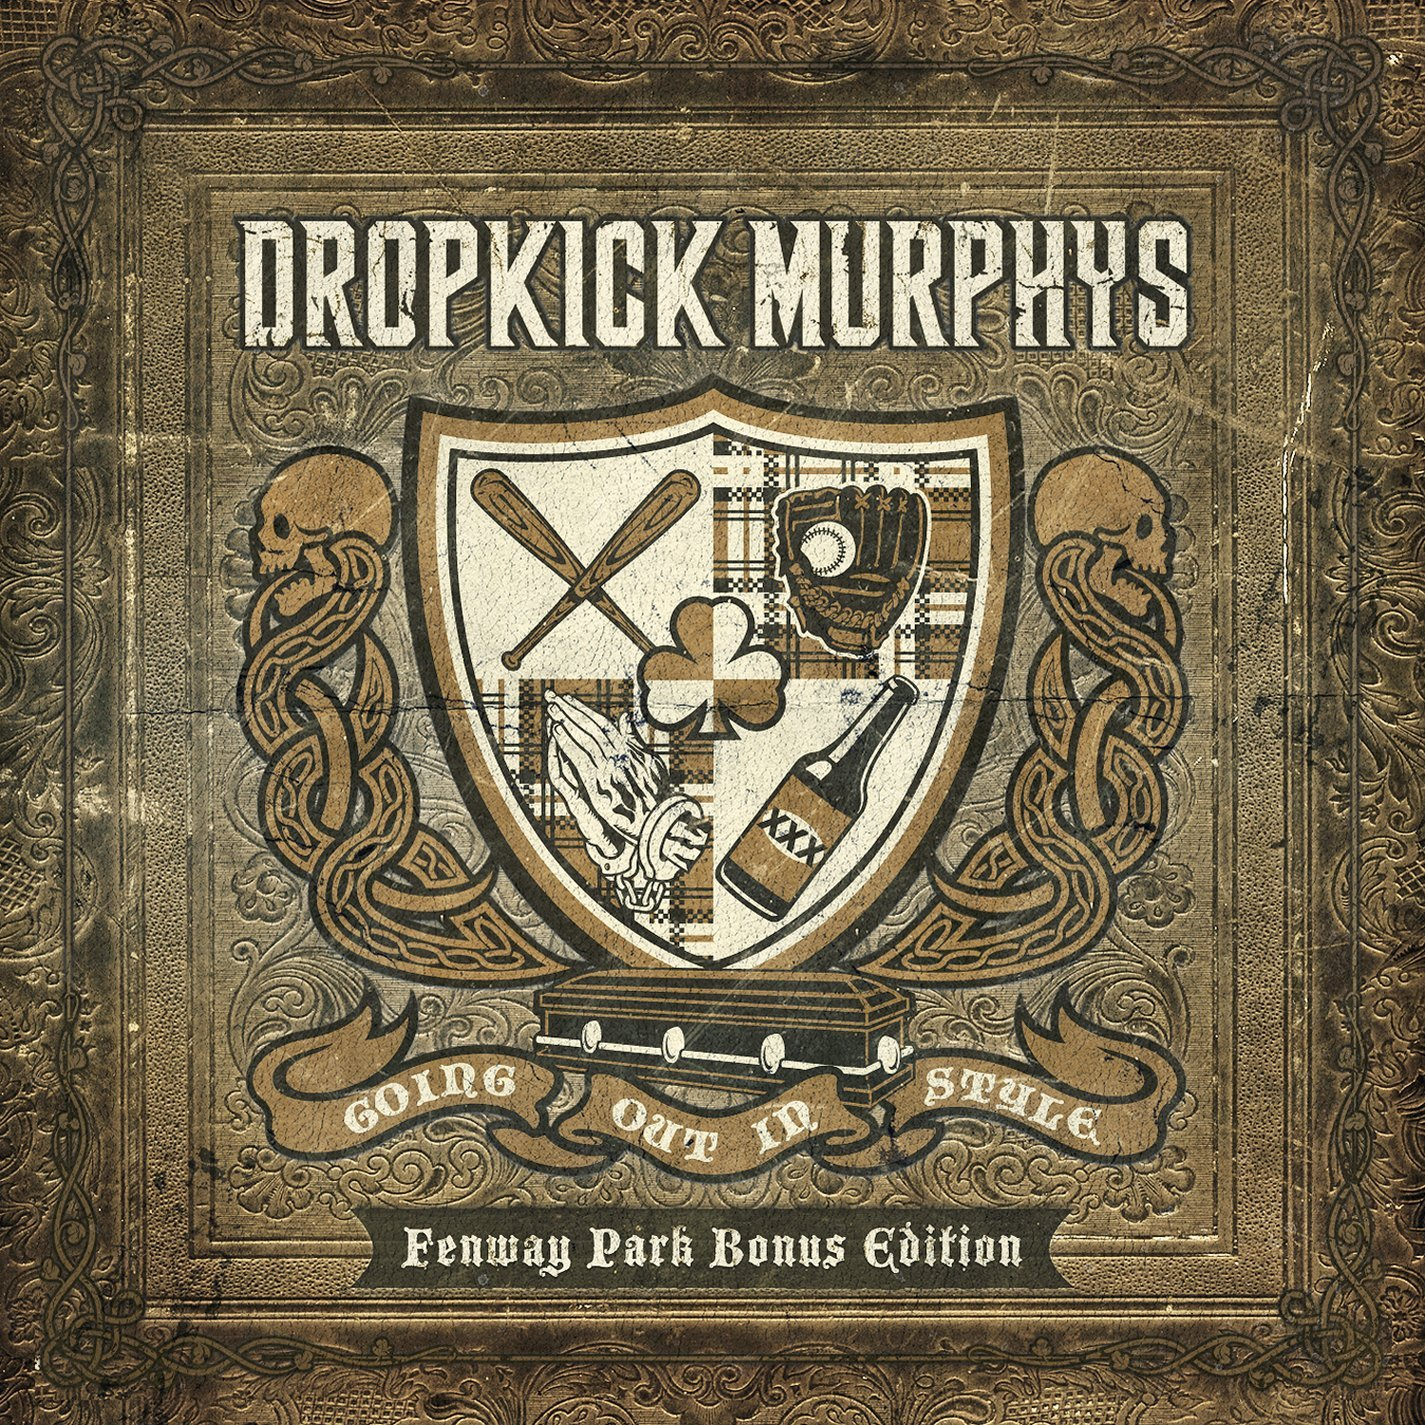 Going Out In Style: Fenway Park Bonus Edition by Dropkick Murphys (Image #1)